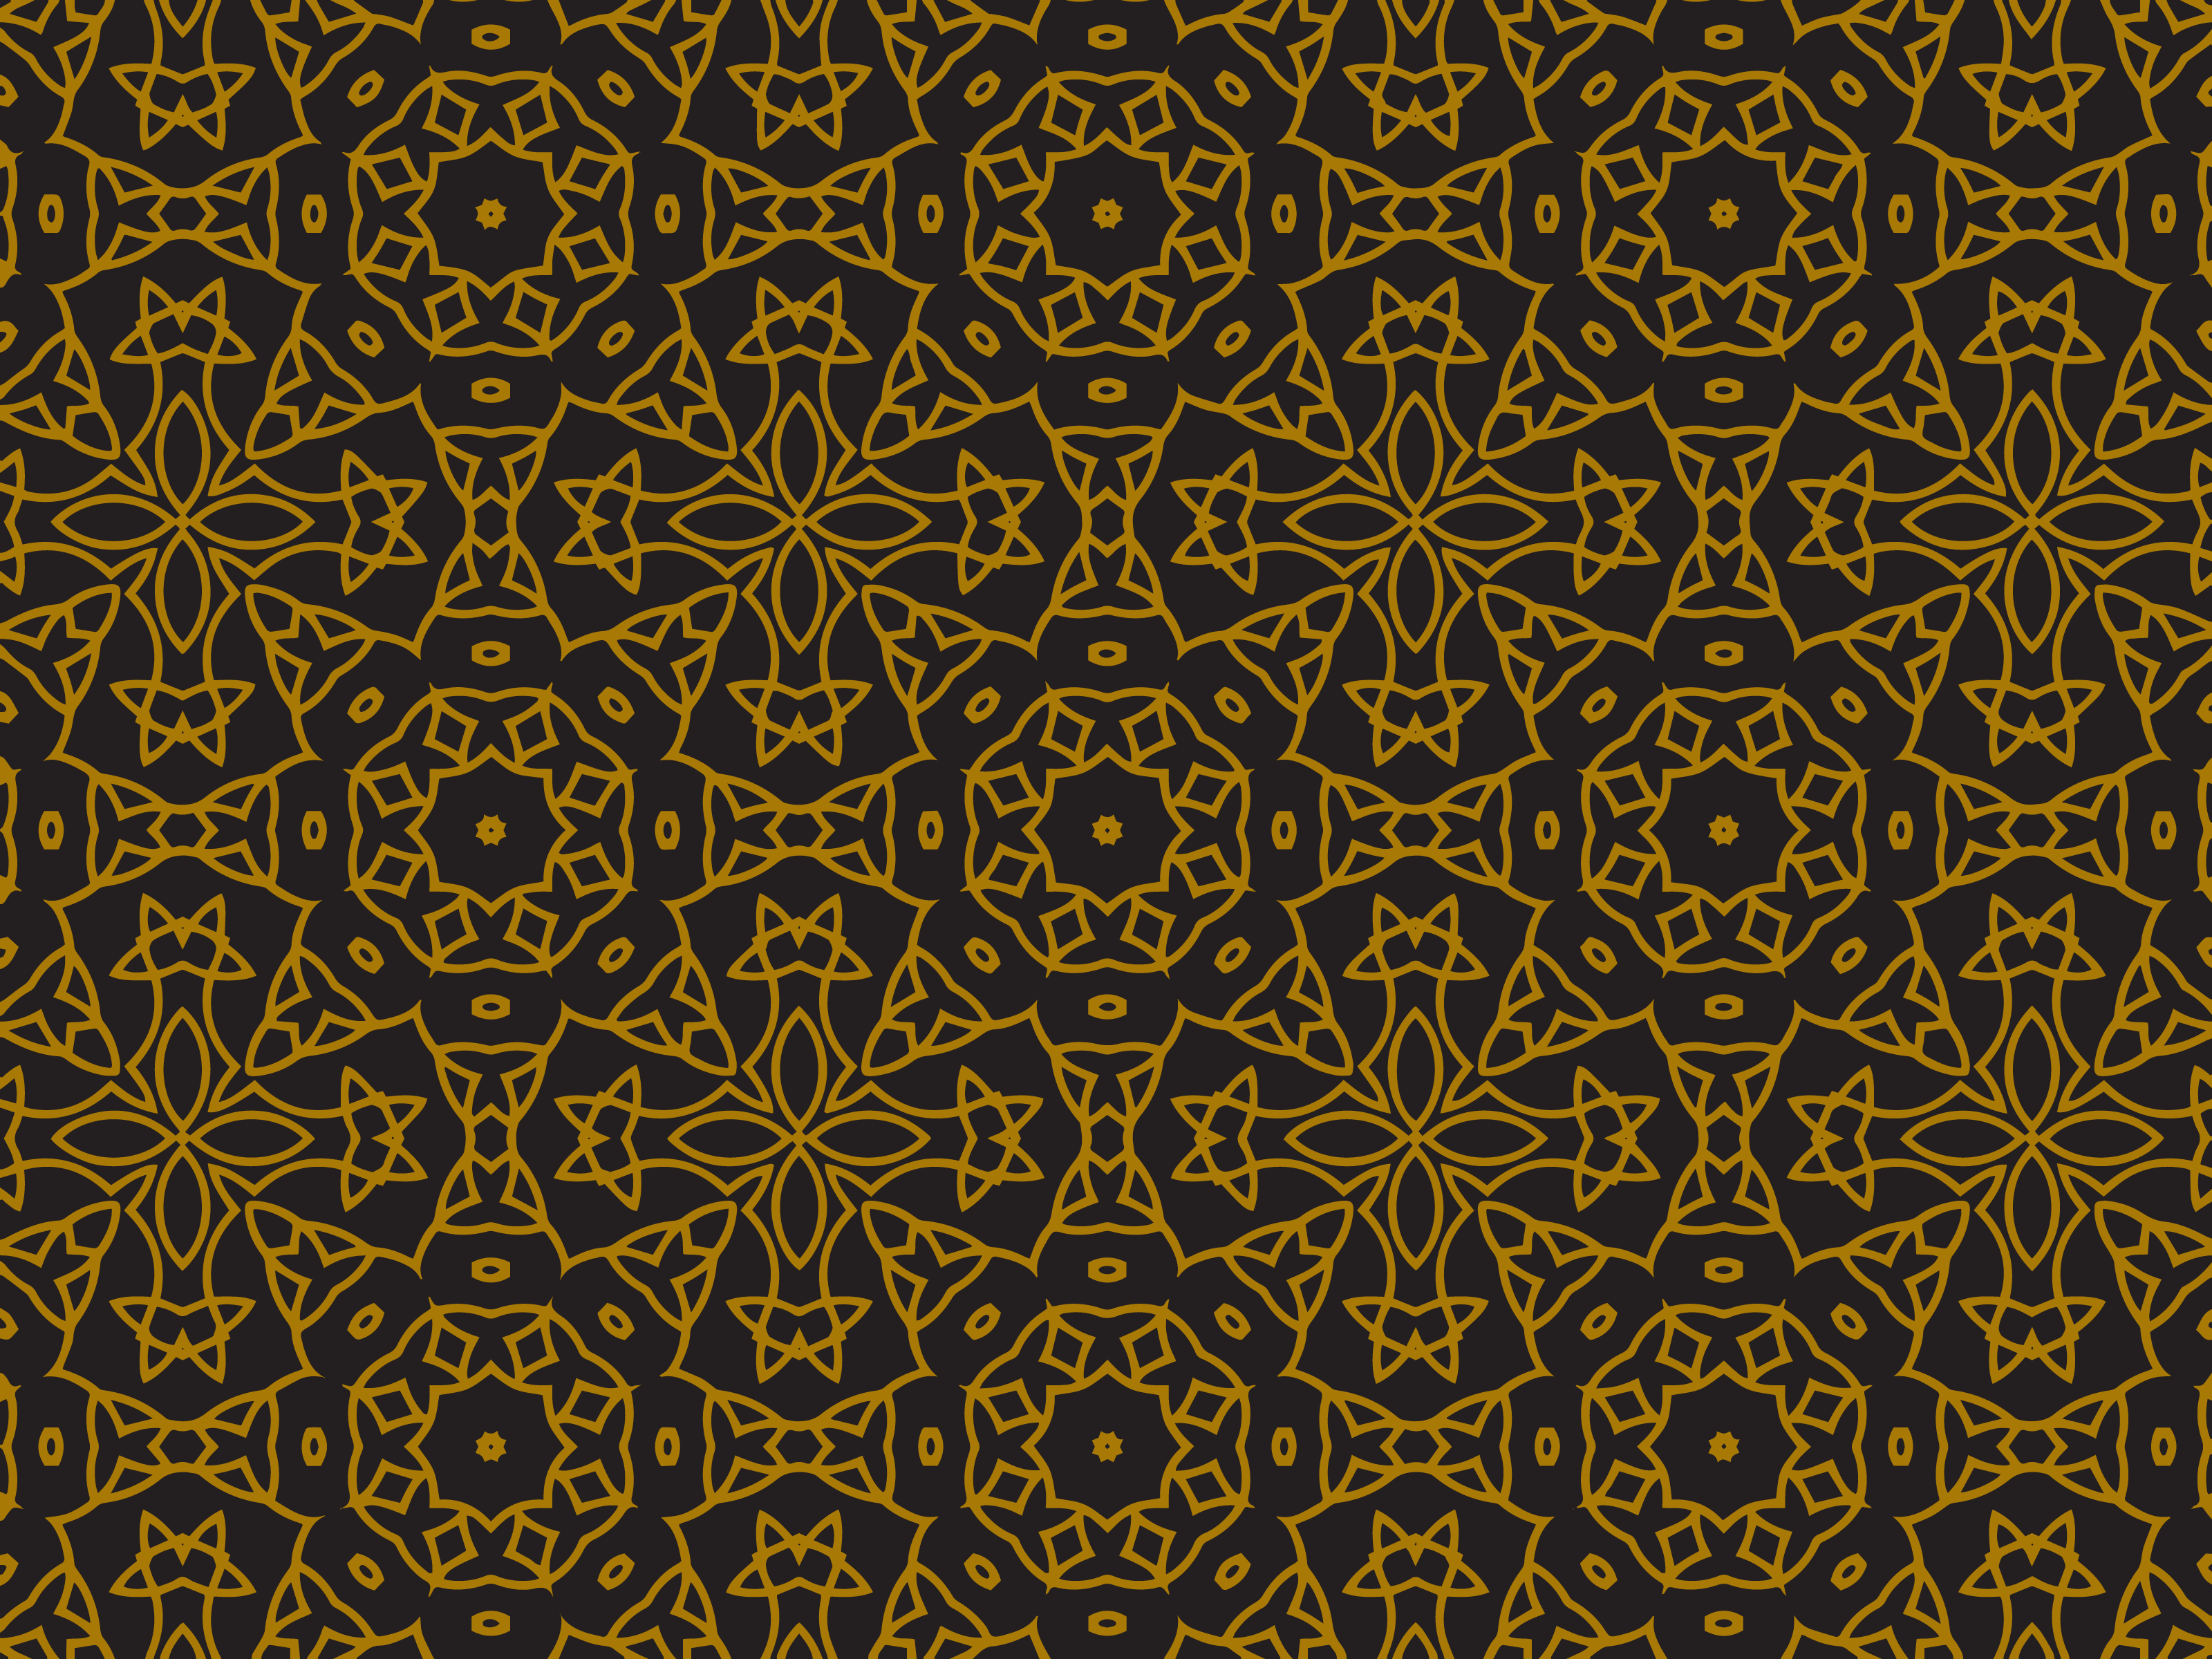 Download Free Pattern Gold Abstract Ornament Graphic By Silkymilkycreative for Cricut Explore, Silhouette and other cutting machines.